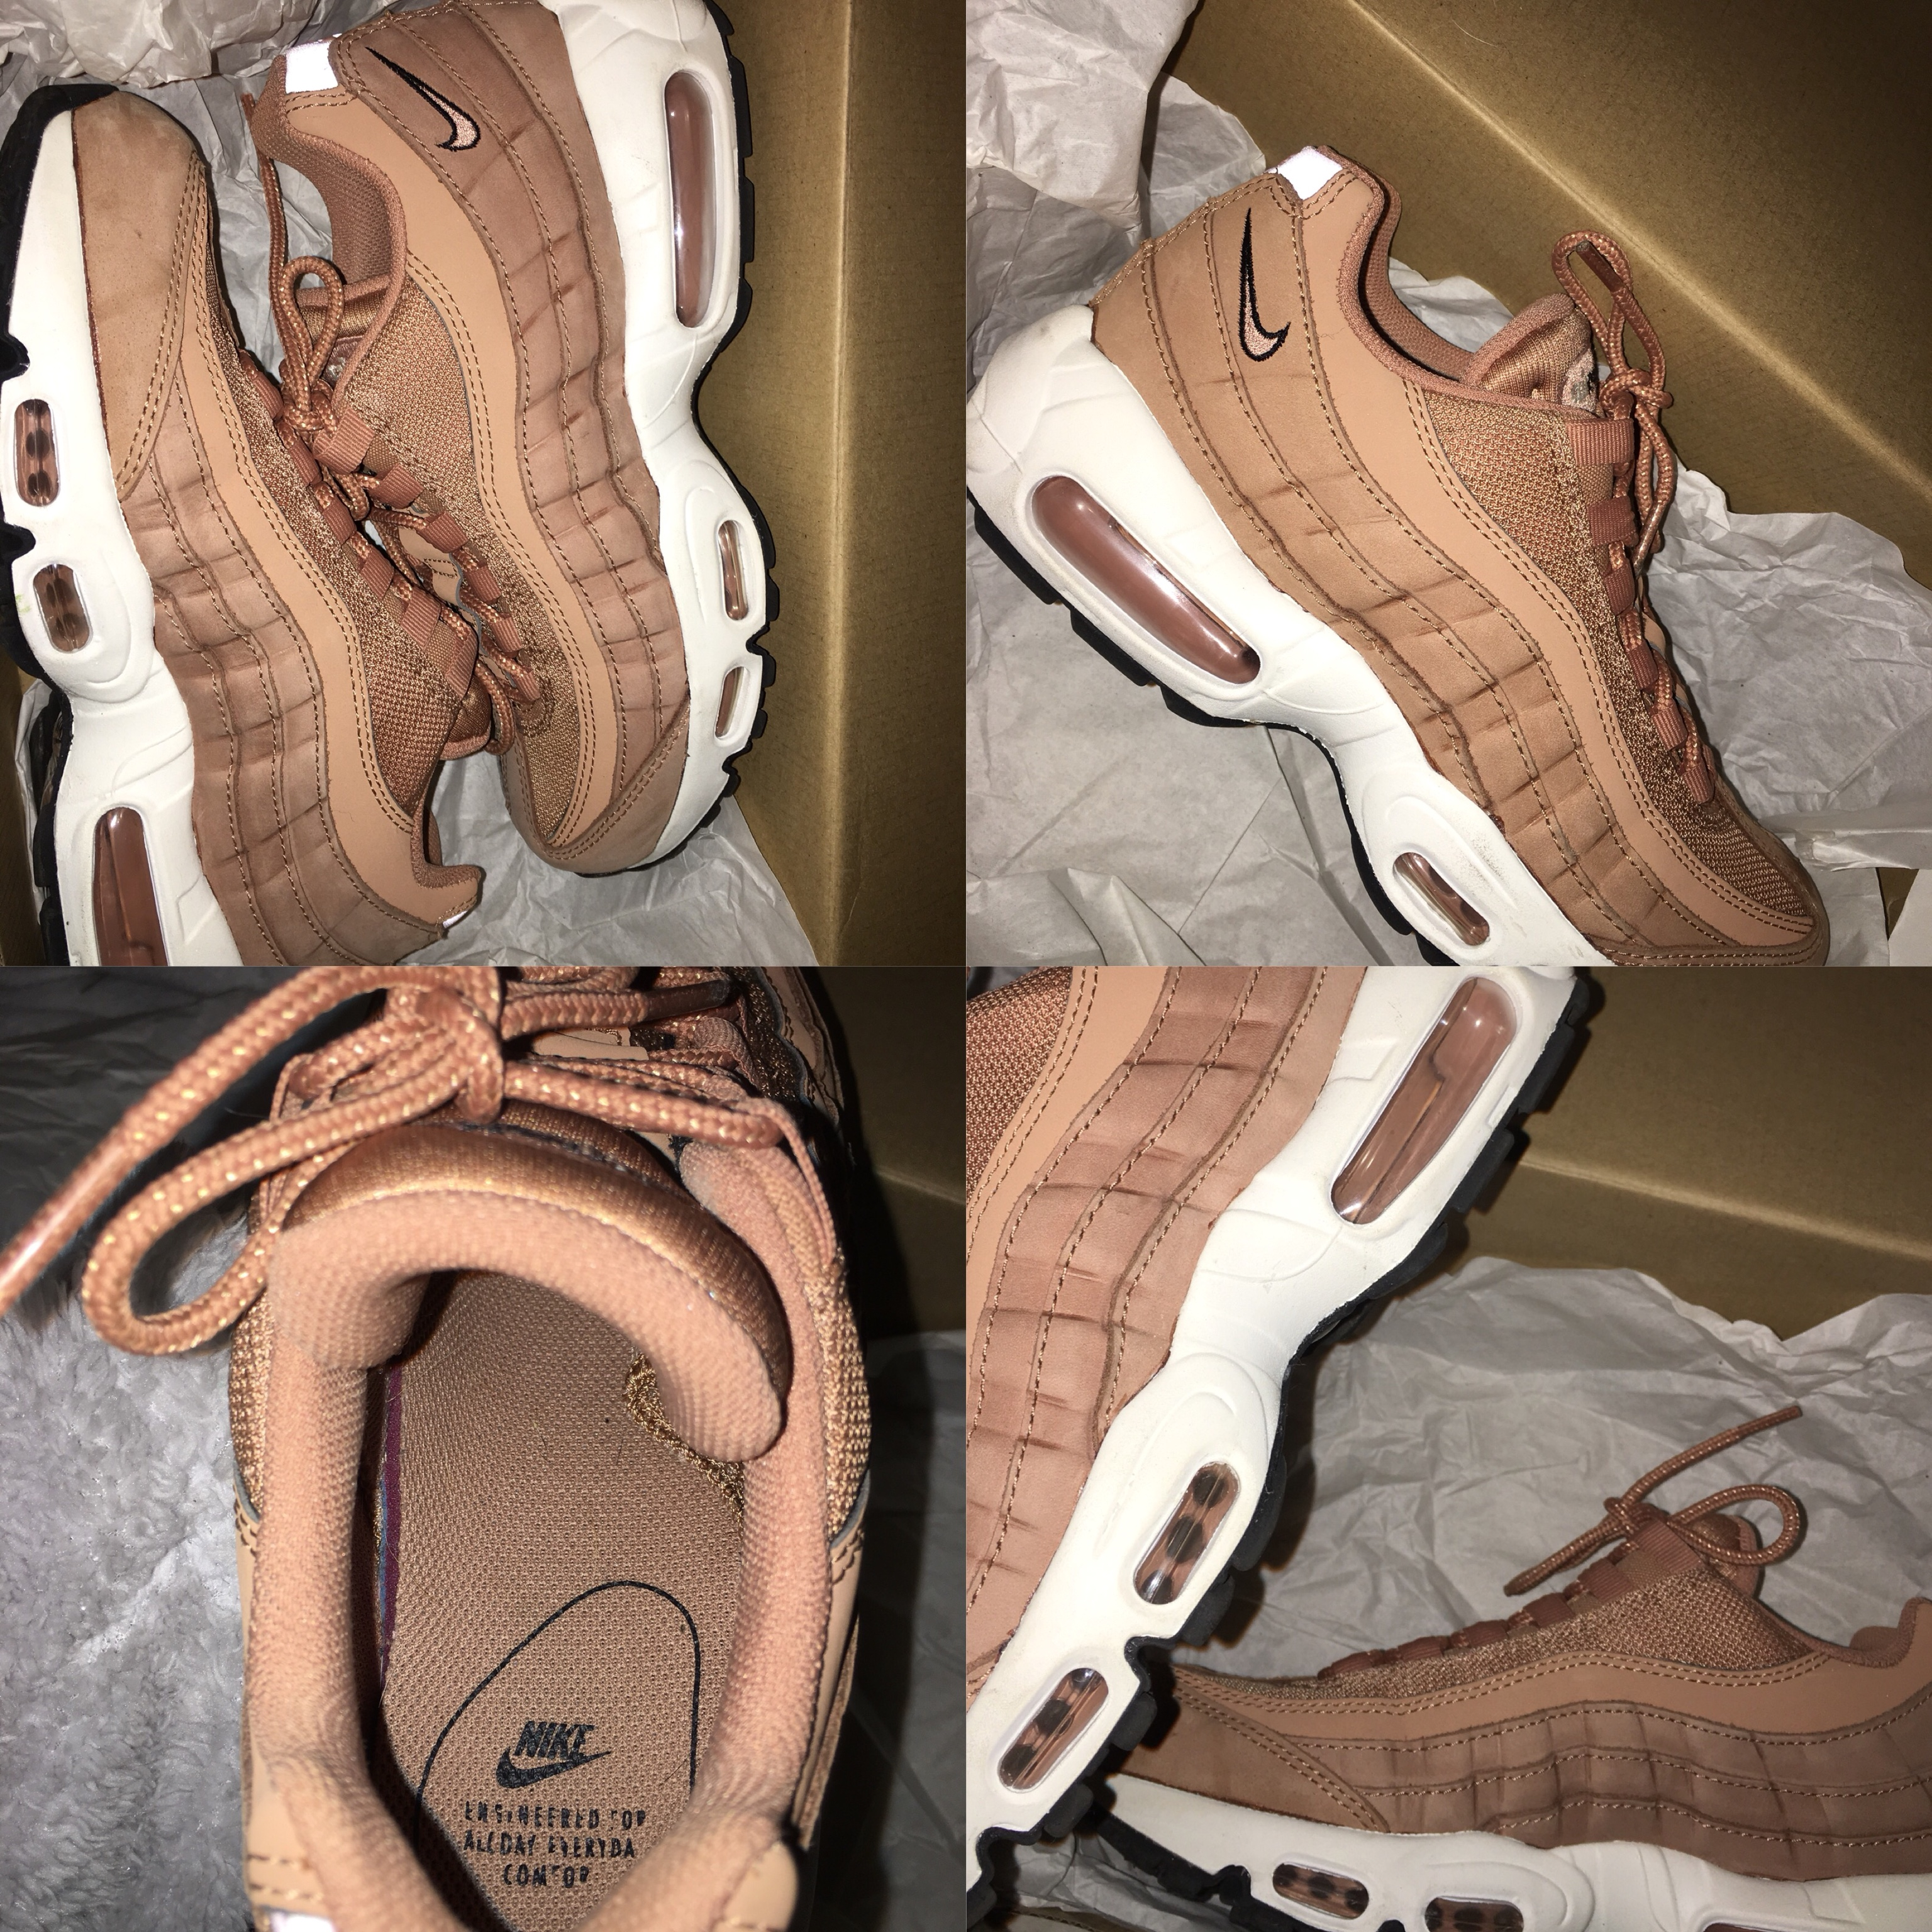 SUEDE DUSTY PINK/NUDE NIKE AIR MAX 95s